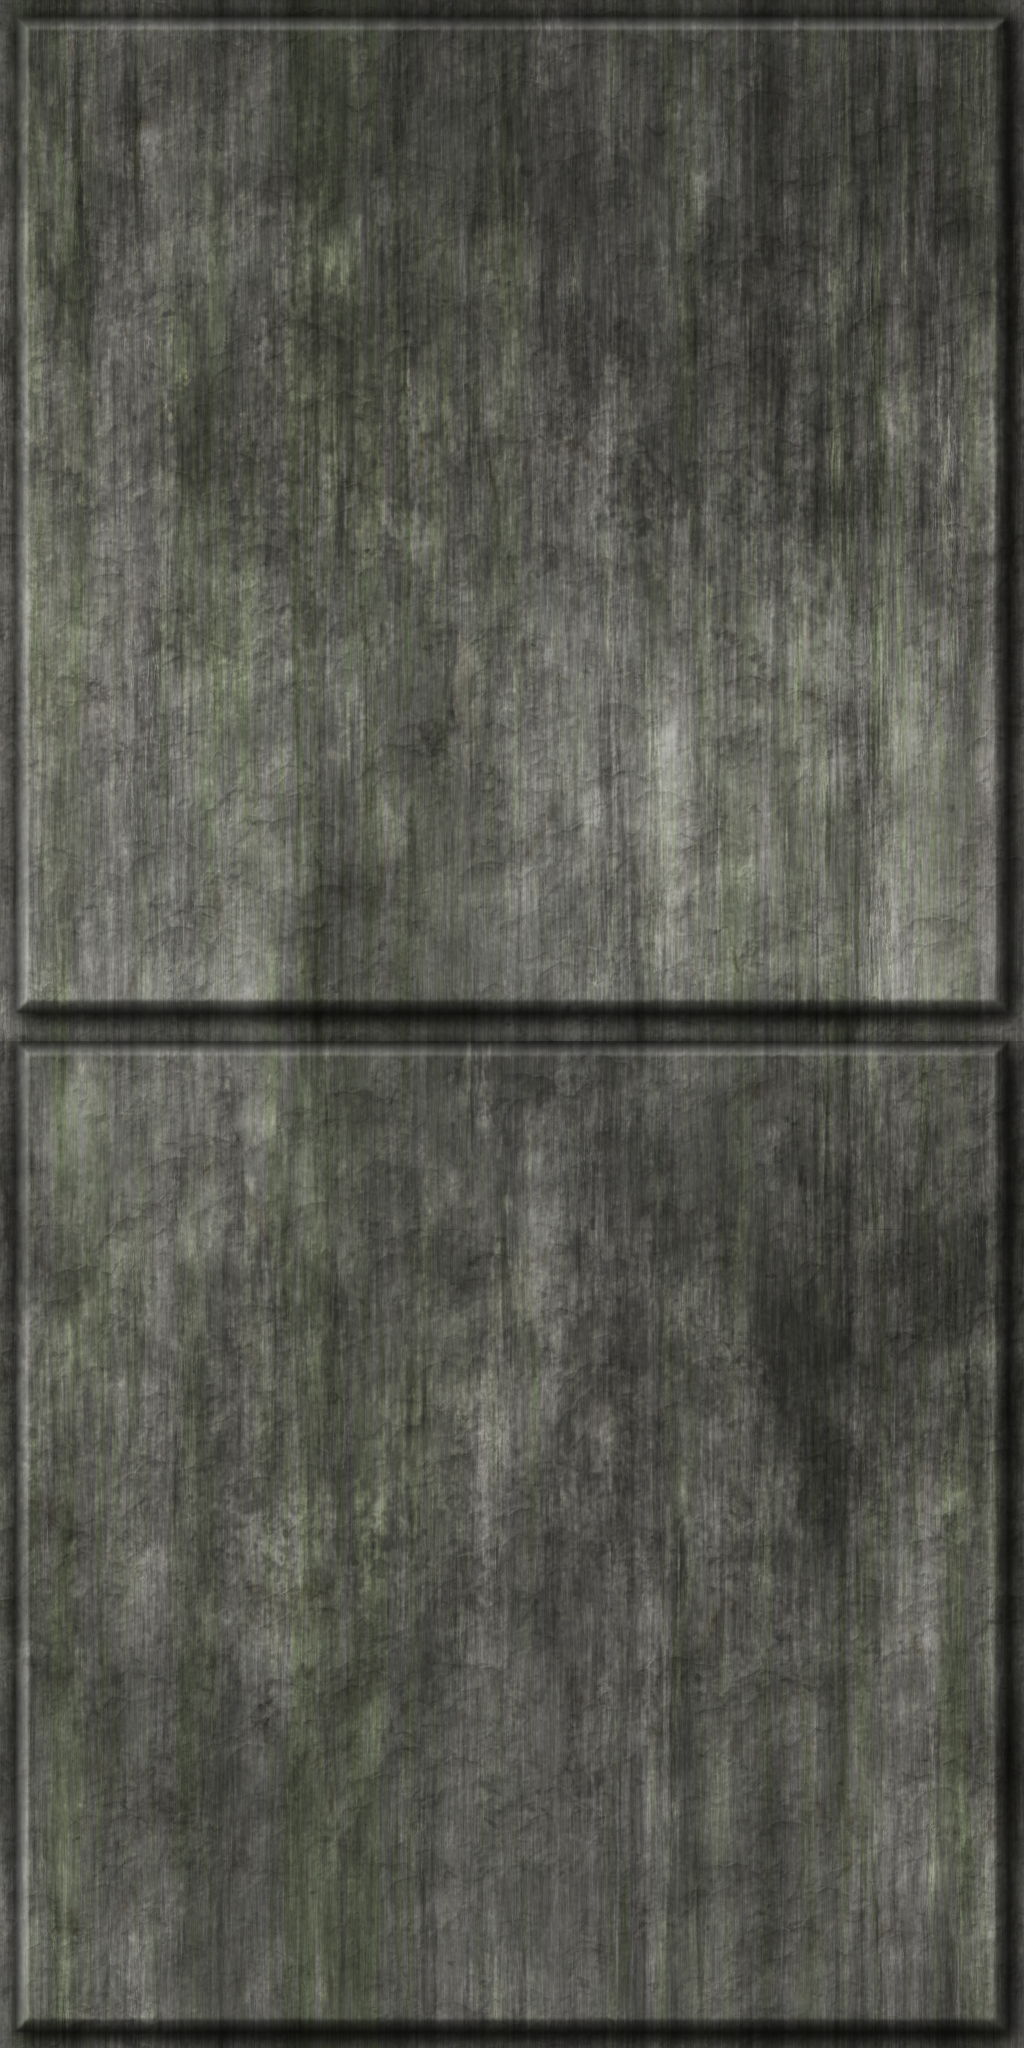 Grey Panel Wall 01 by Hoover1979